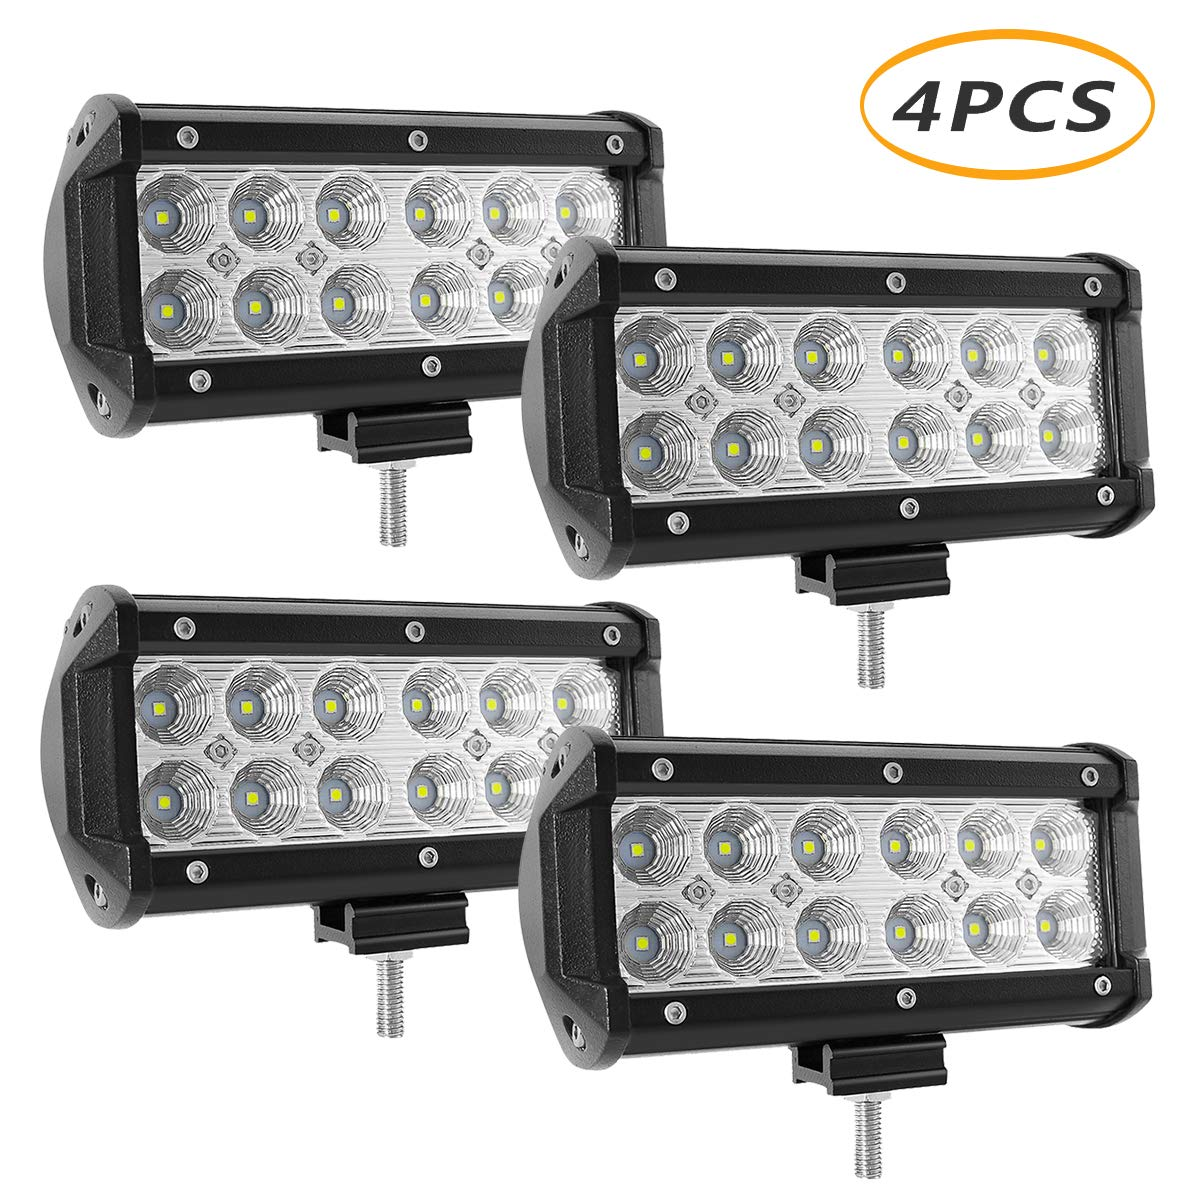 LED Light Bar 4'' 48W, YEEGO Spot LED Pods Driving Light Off Road Lamp Roof Bar Bumper for Jeep, SUV Truck, Hunters, 2 Years Warranty (2Pack-48W Flood Light)